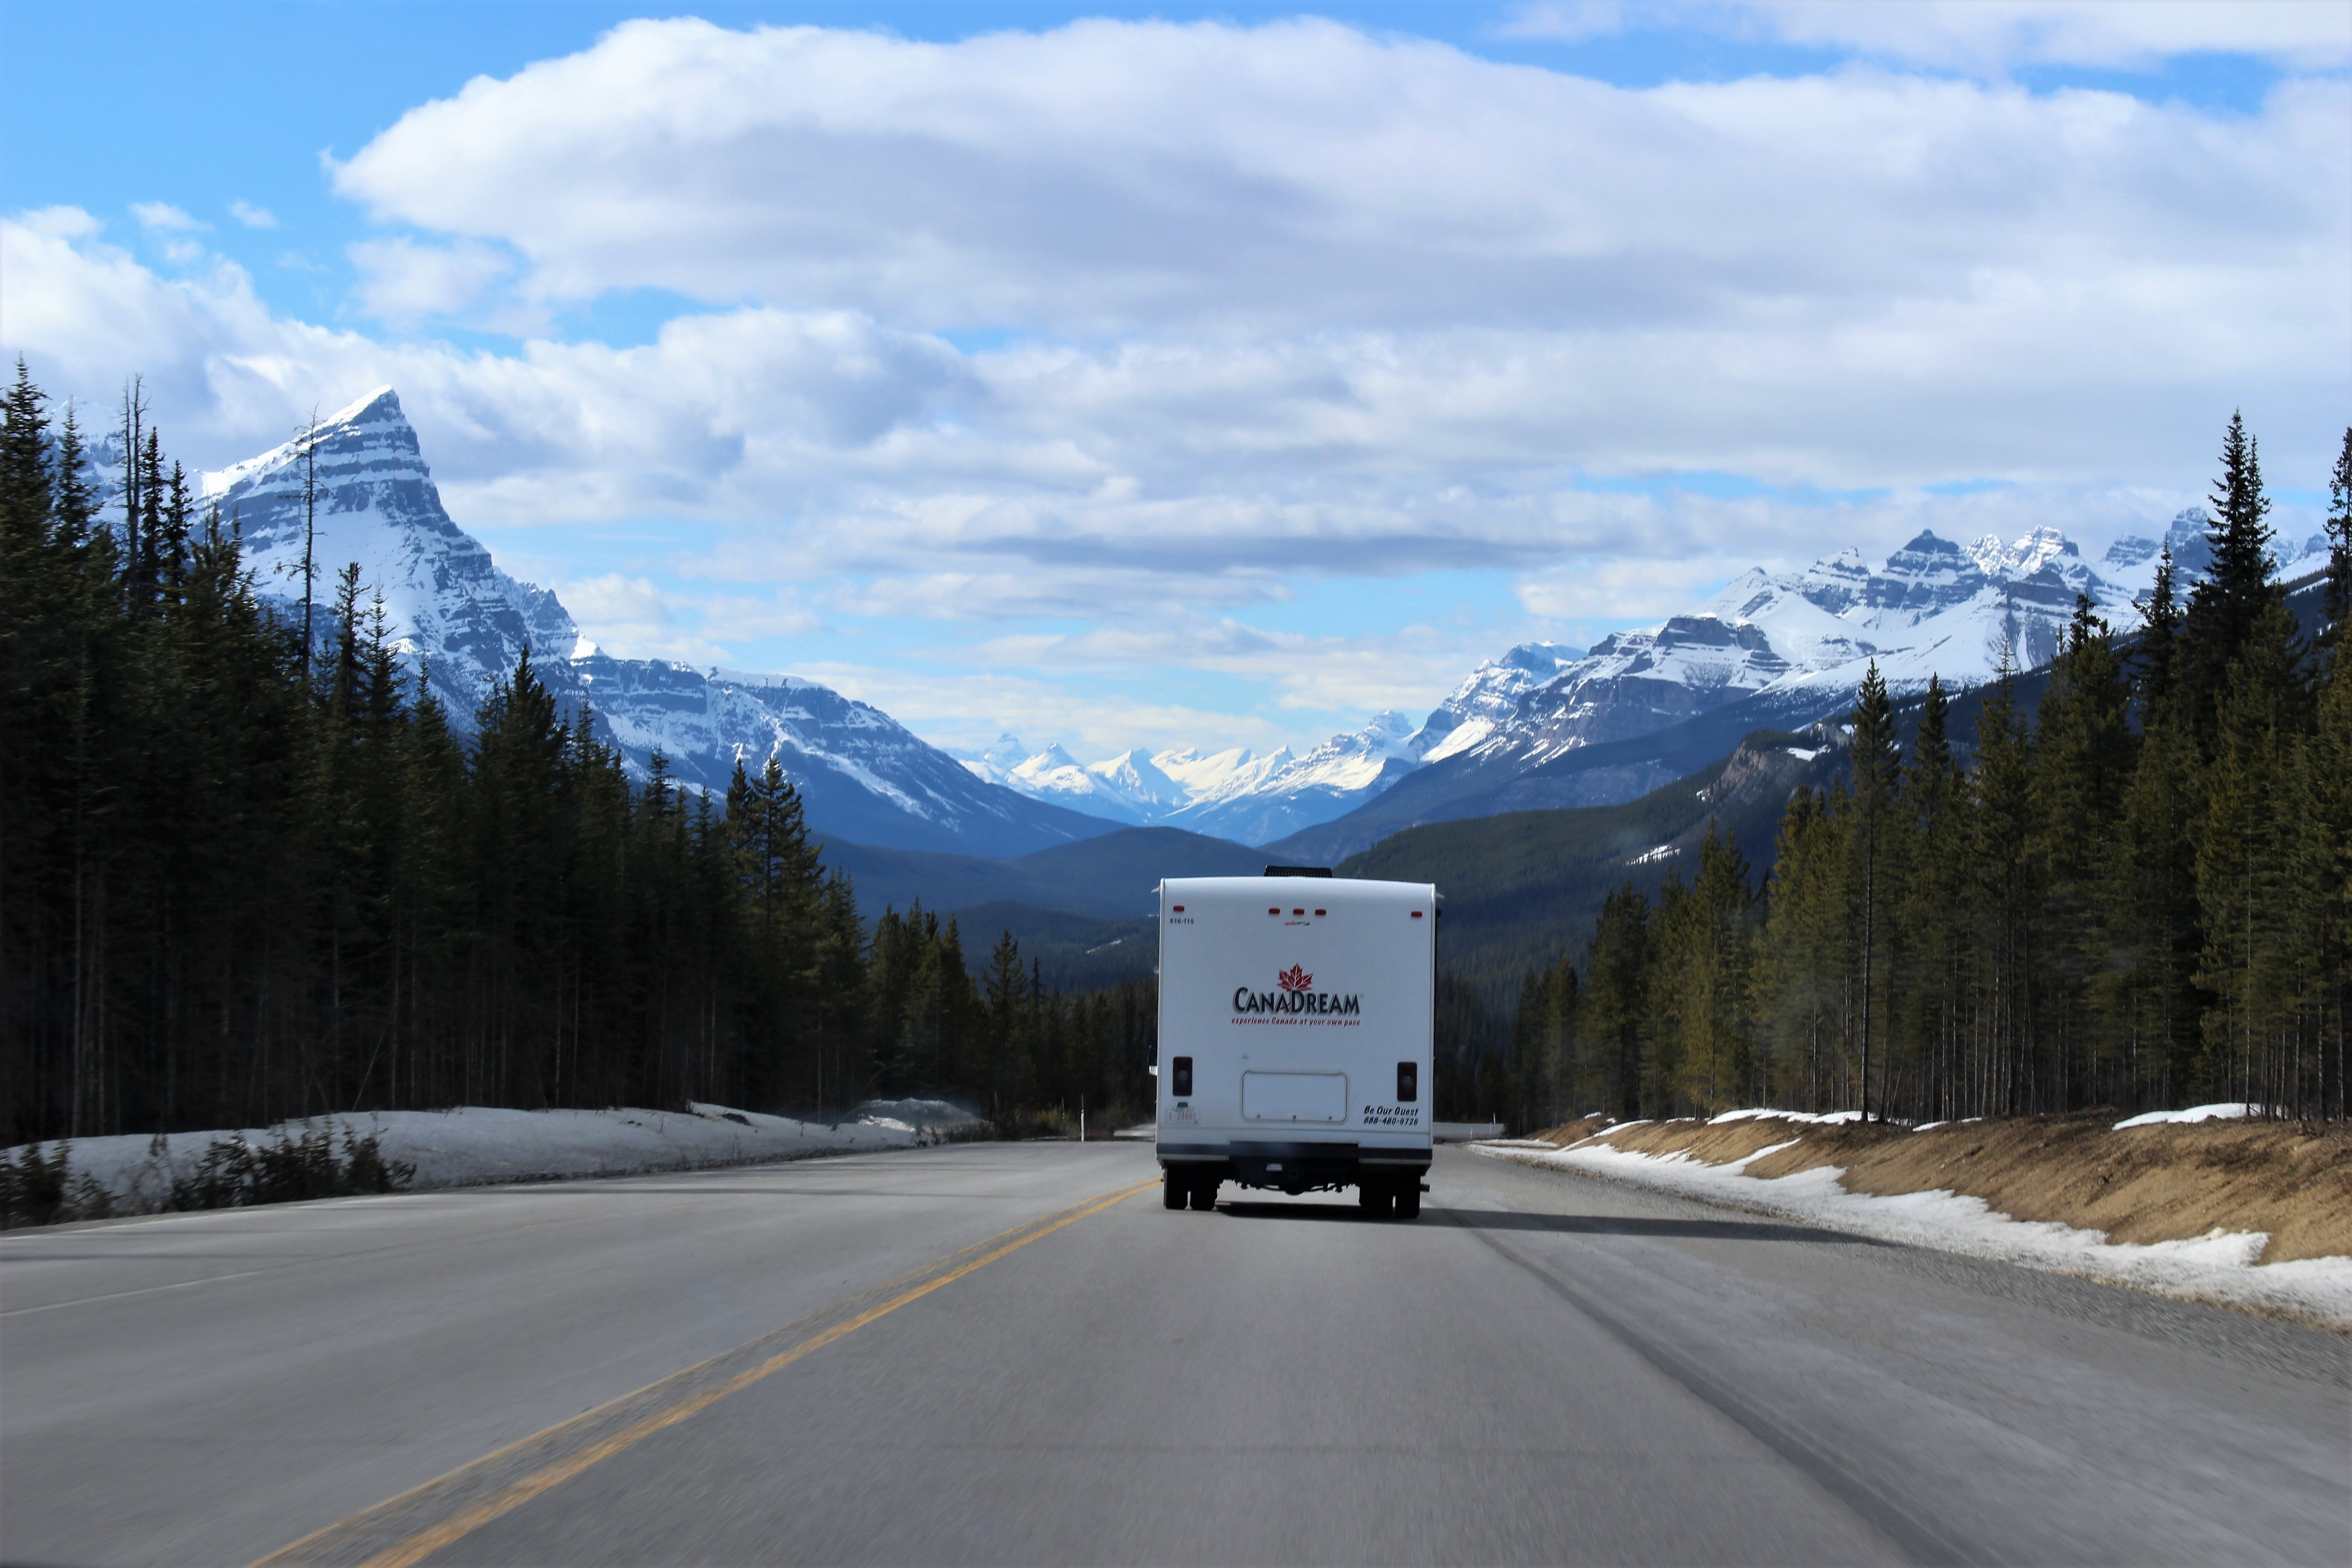 White CanaDream truck on the road.